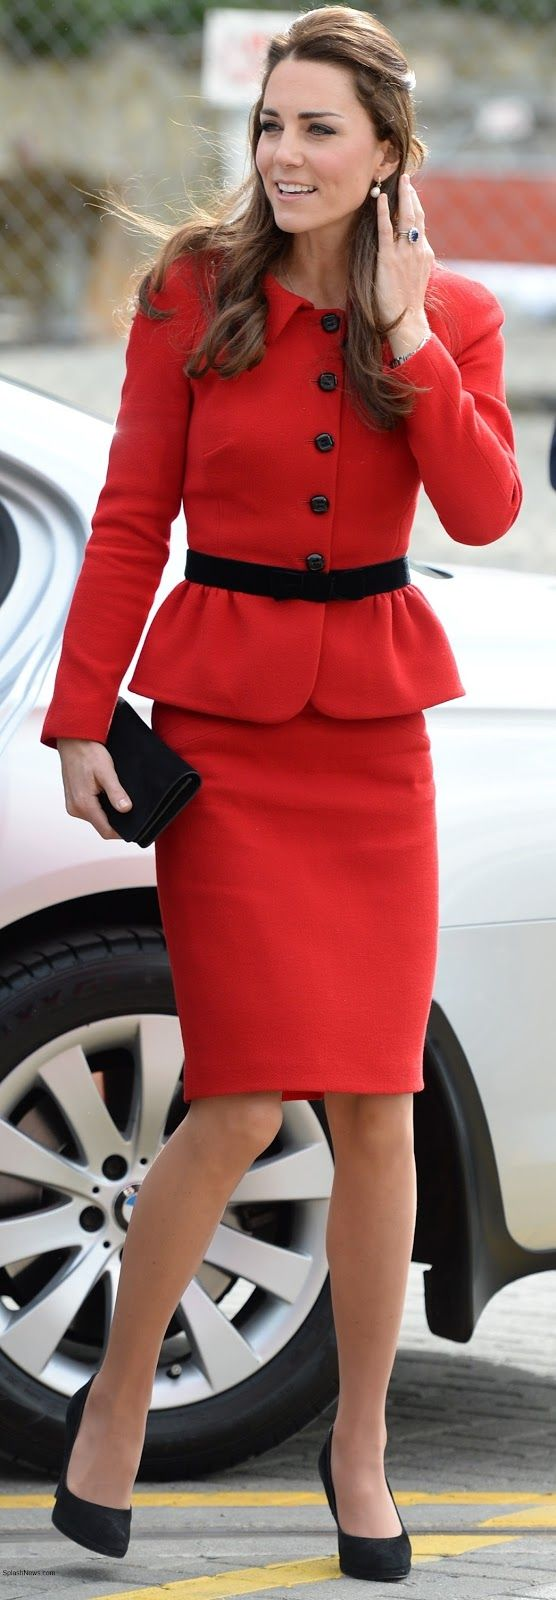 Cambridge Royal Tour-Day 7, Christchurch, New Zealand, April 14, 2014-The Duchess of Cambridge repeated a Luisa Spangoli red skirt suit she first wore on a visit to St. Andrews University, teamed with black accessories to honor the colors of Christ church red and black.